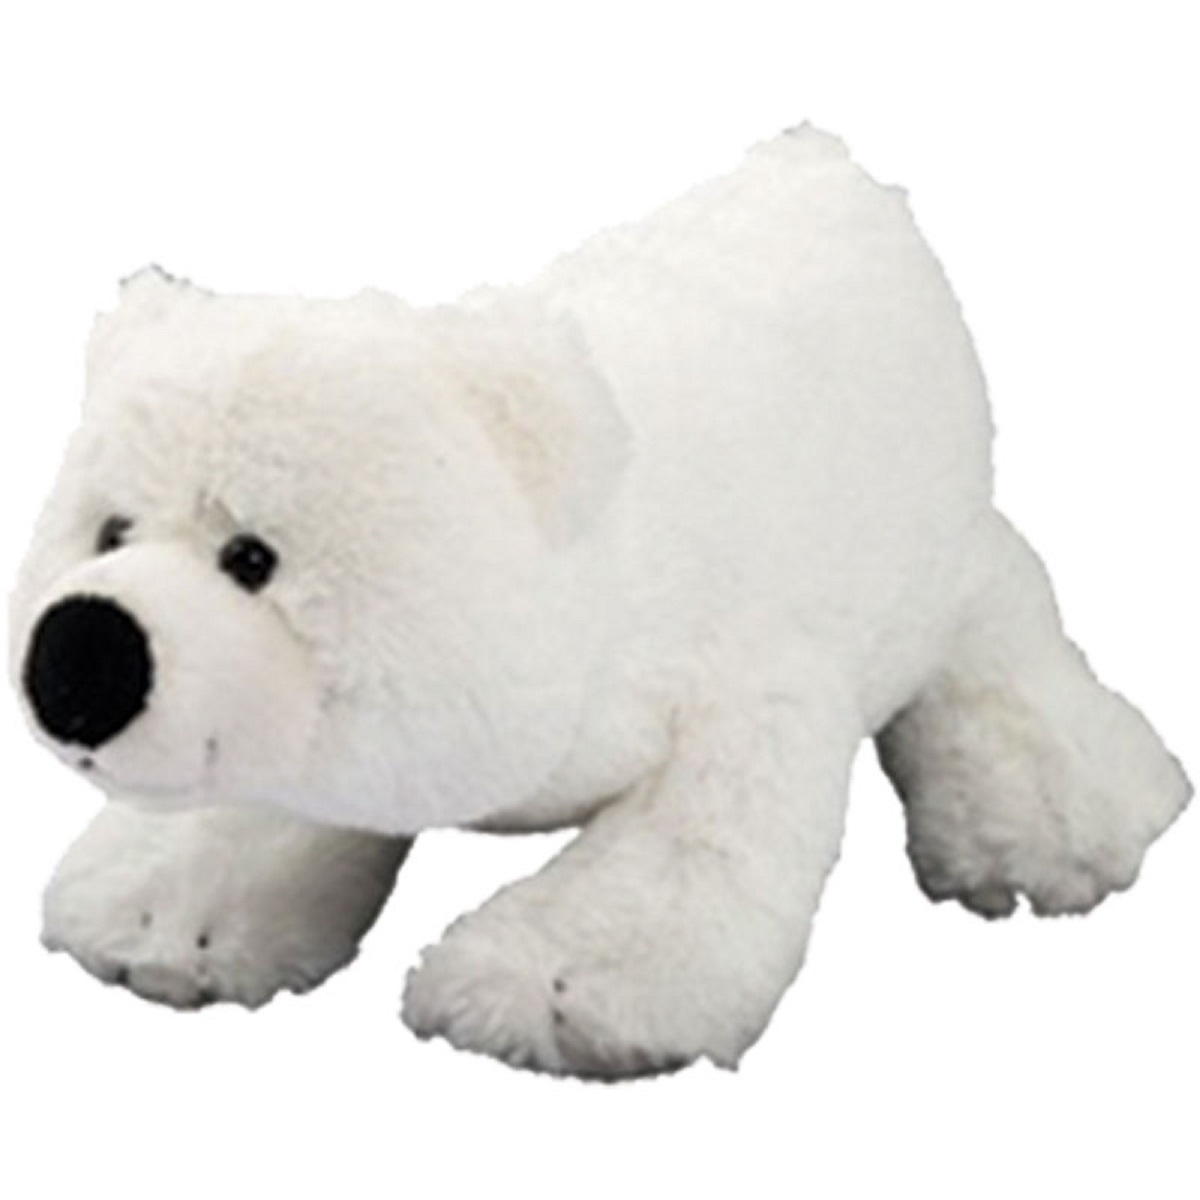 Peluche ours pôlaire - FREDDY - 60028